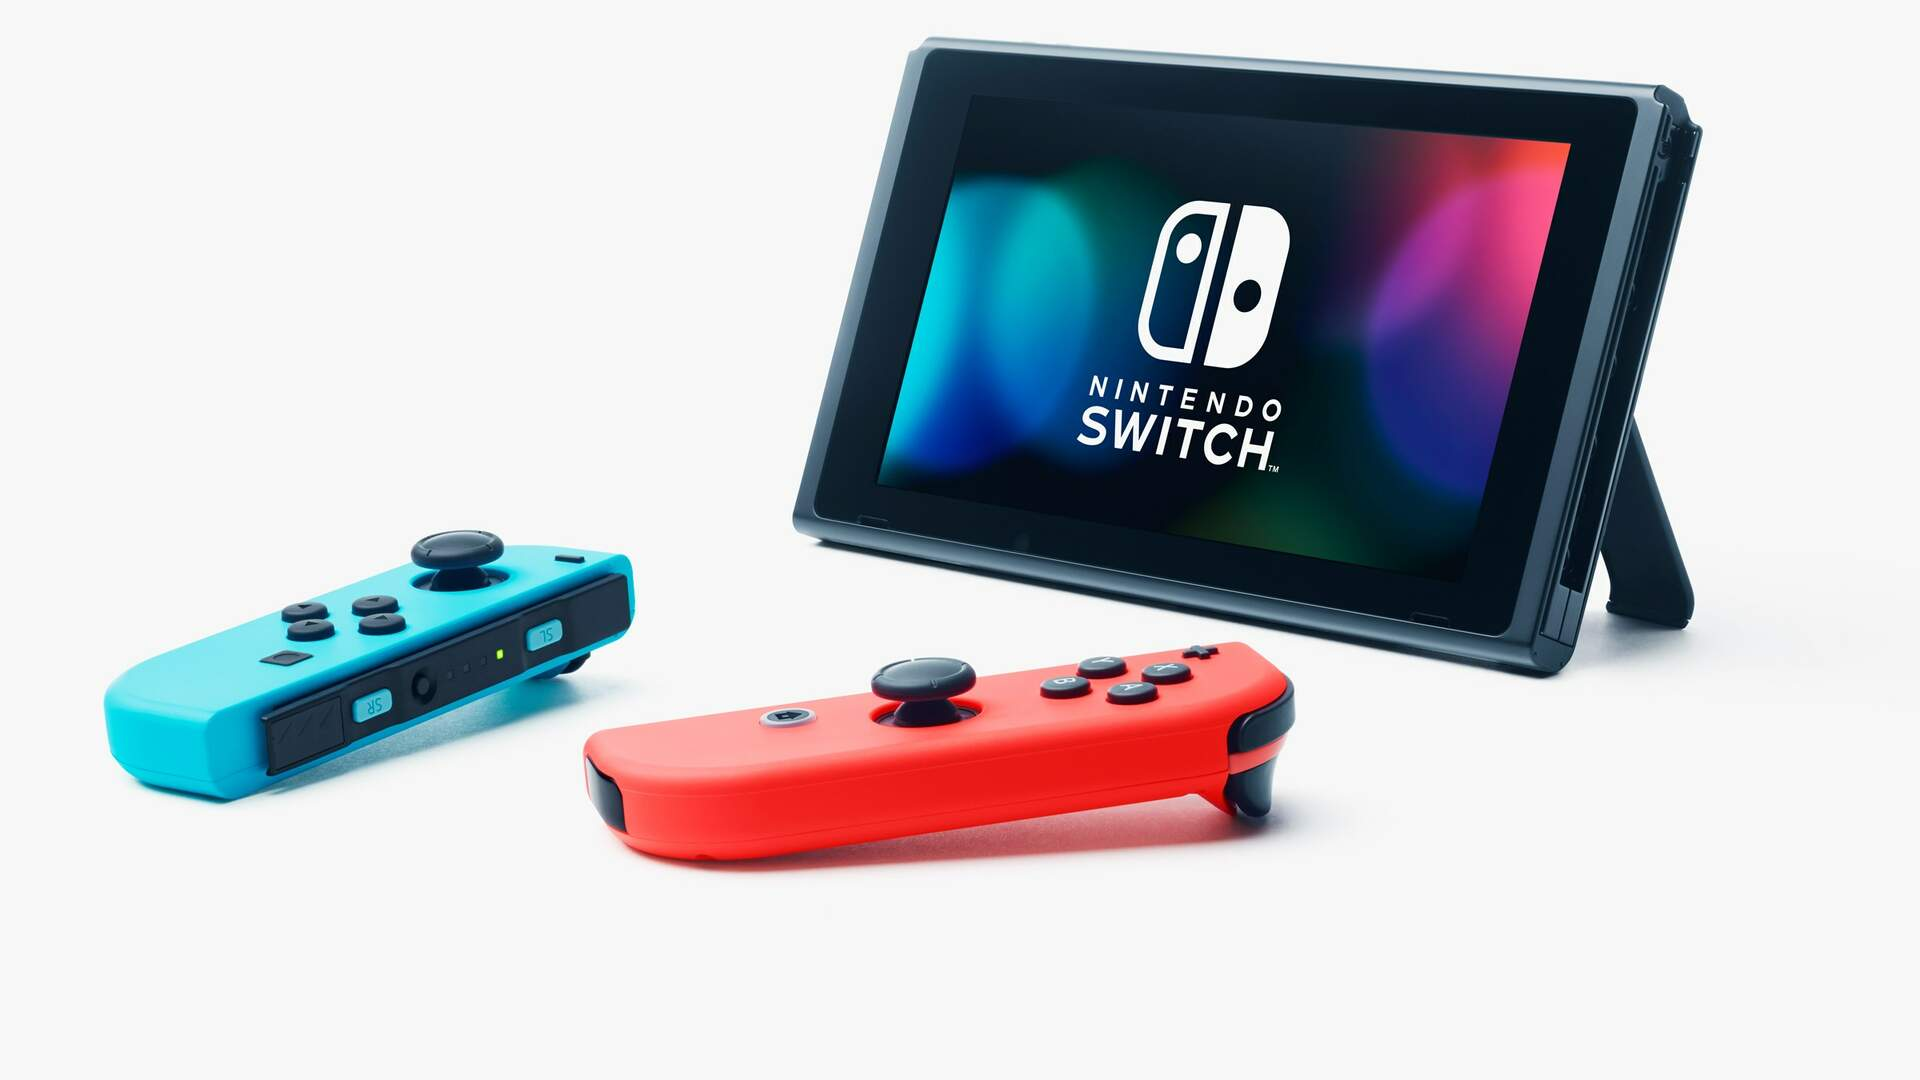 Rumored Switch Pro Possibly Delayed According to New Report, Switch Lite Reportedly Dockable [Update, Correction]